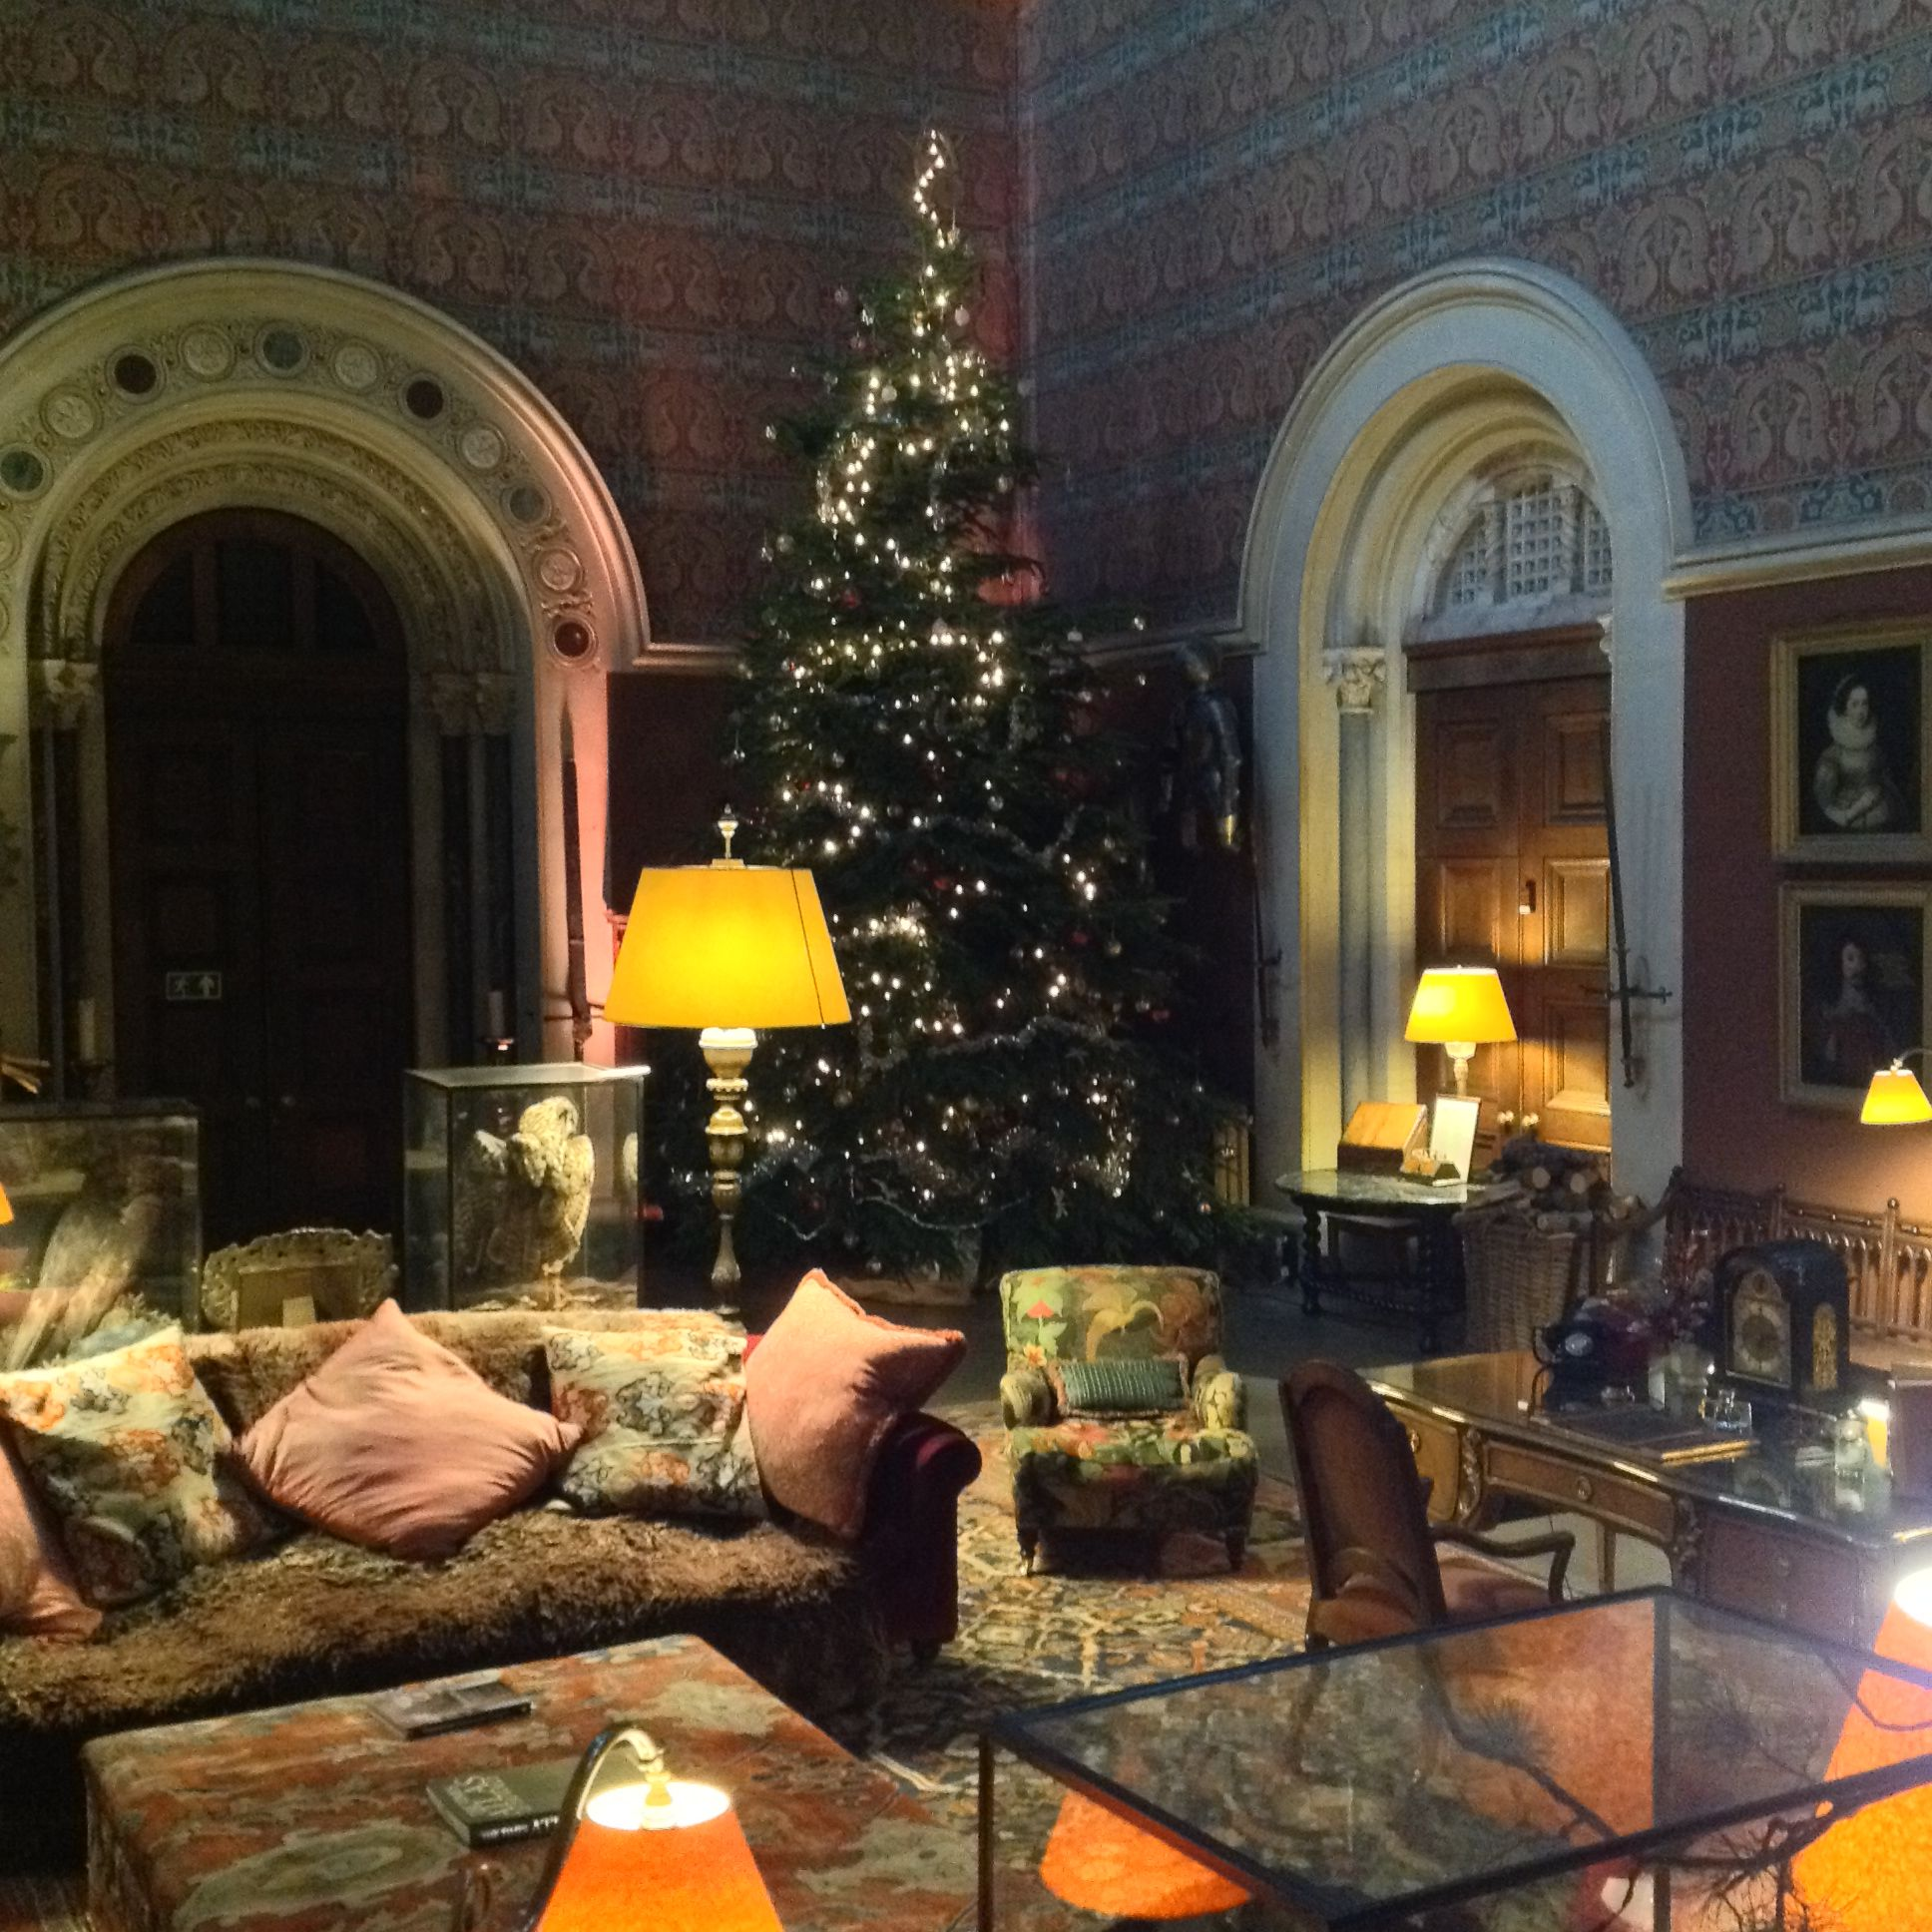 Our Favourite Xmas Photo... The Great Hall At Christmas